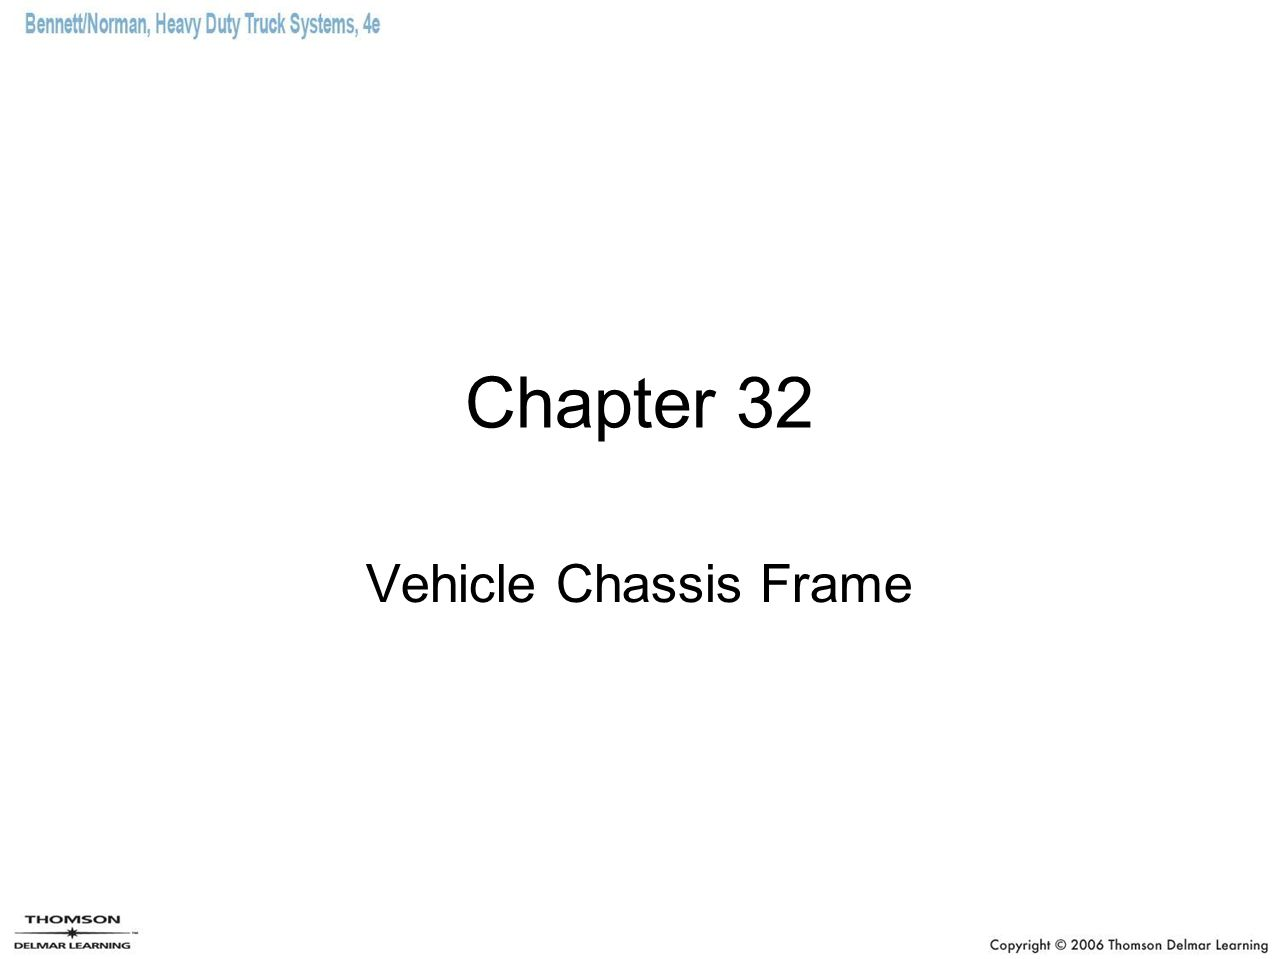 Chapter 32 Vehicle Chassis Frame